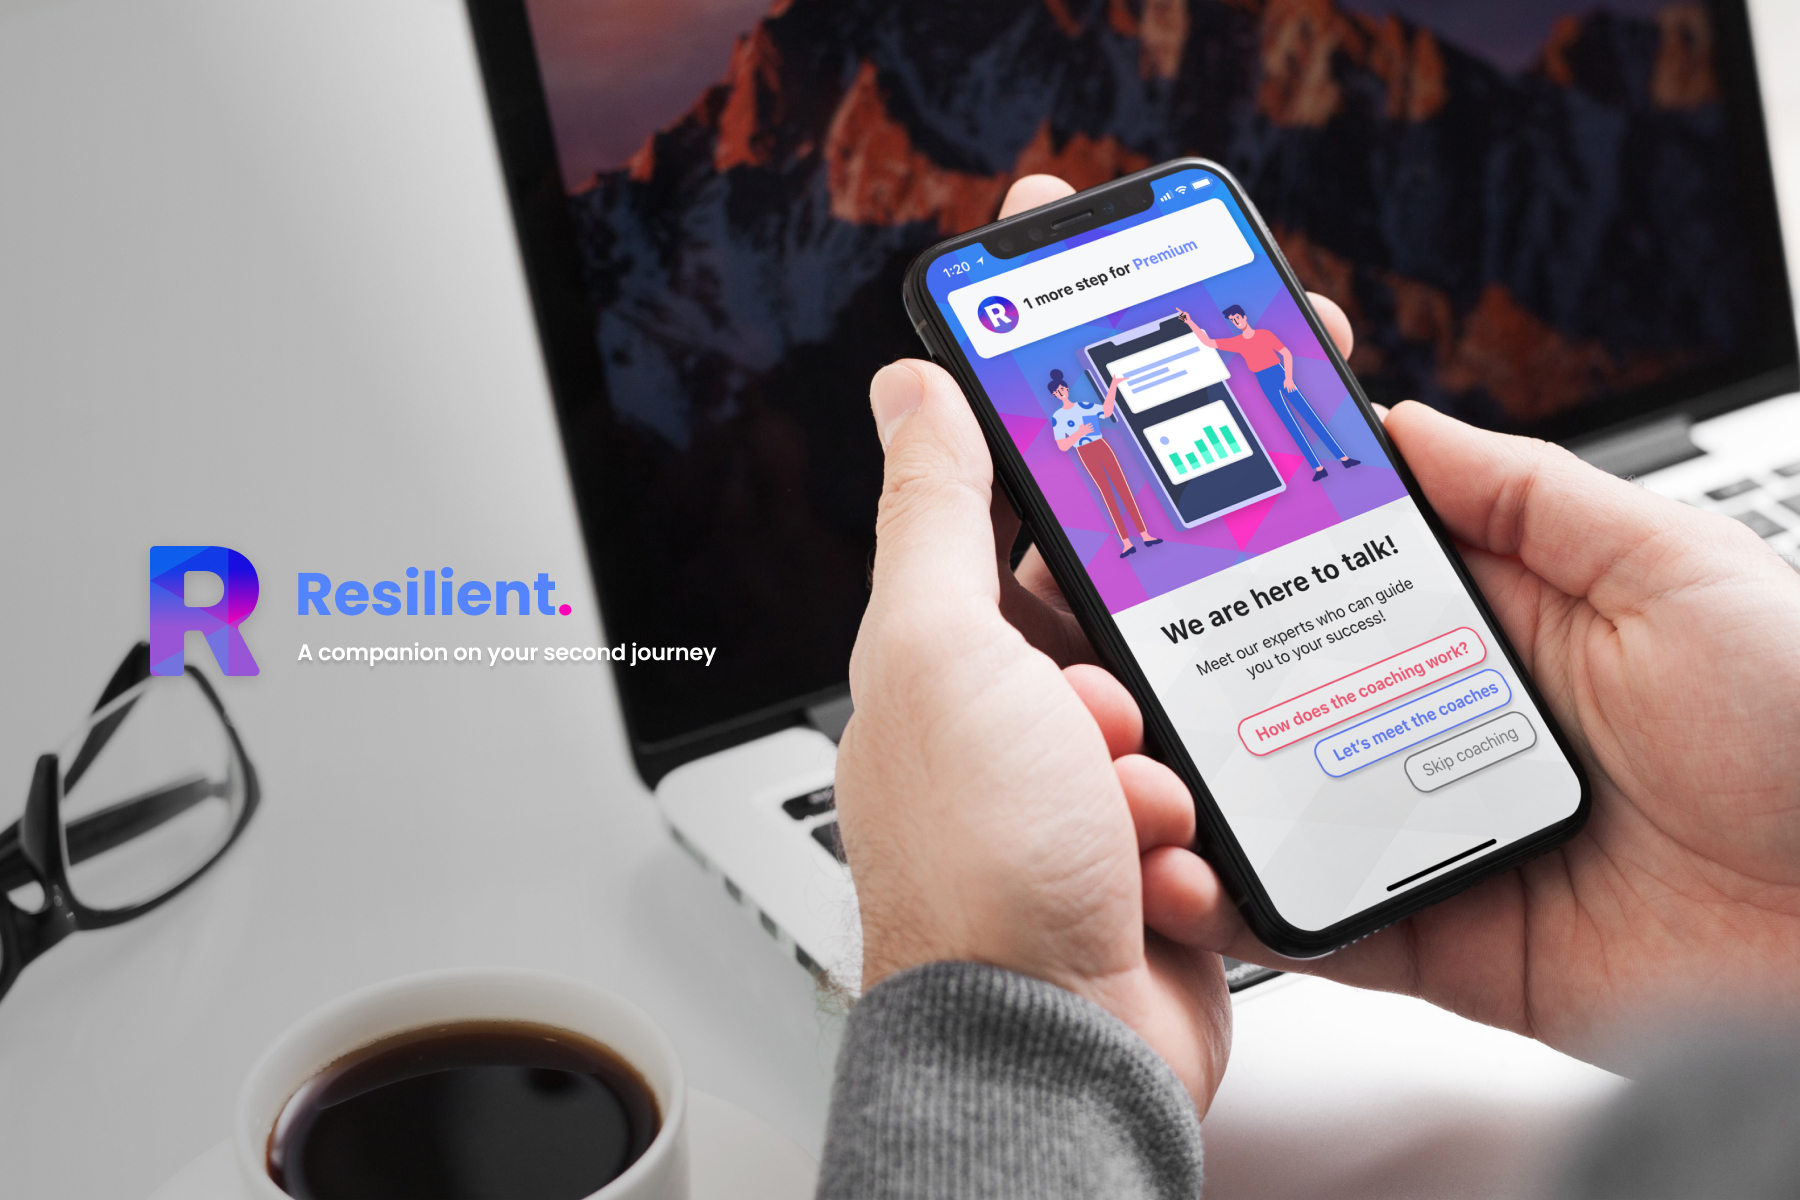 Resilient. A platform that helps older populations move into new post-retirement paths.